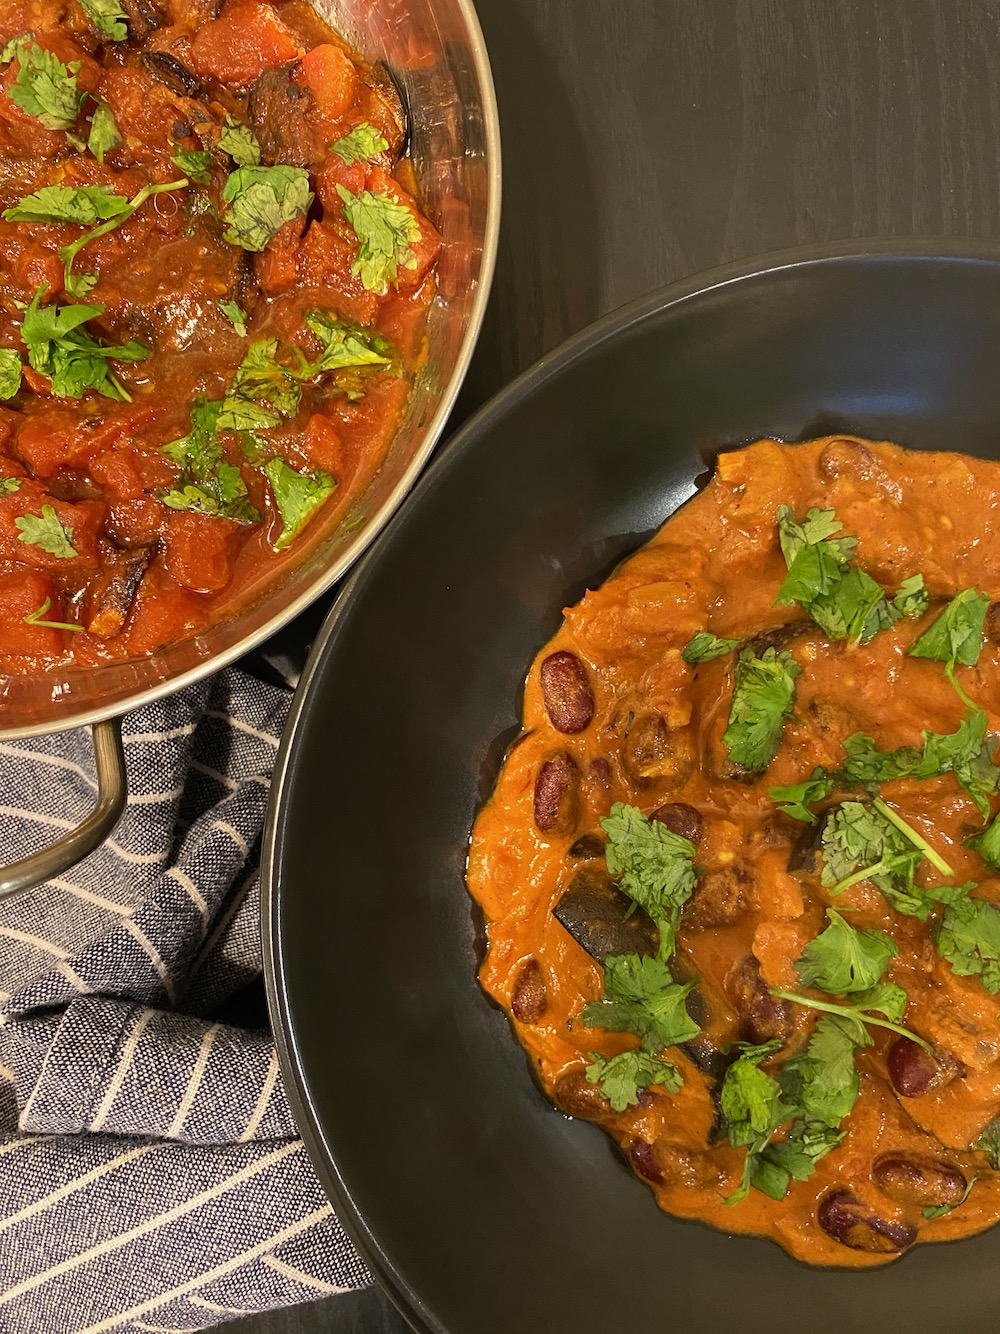 Served with Indian style zucchini simmered in tomatoes.